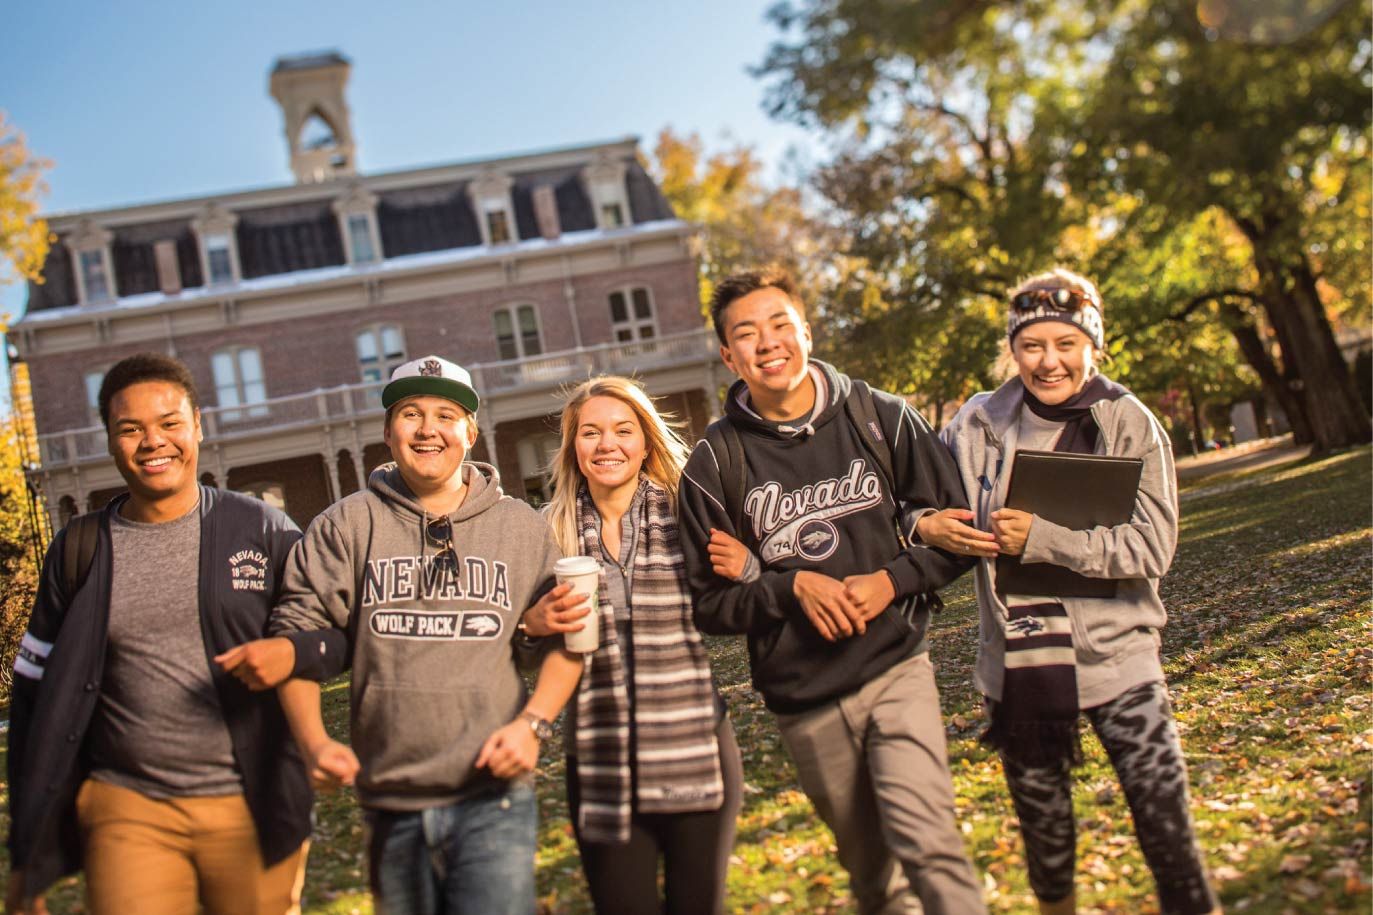 Background image of students on campus